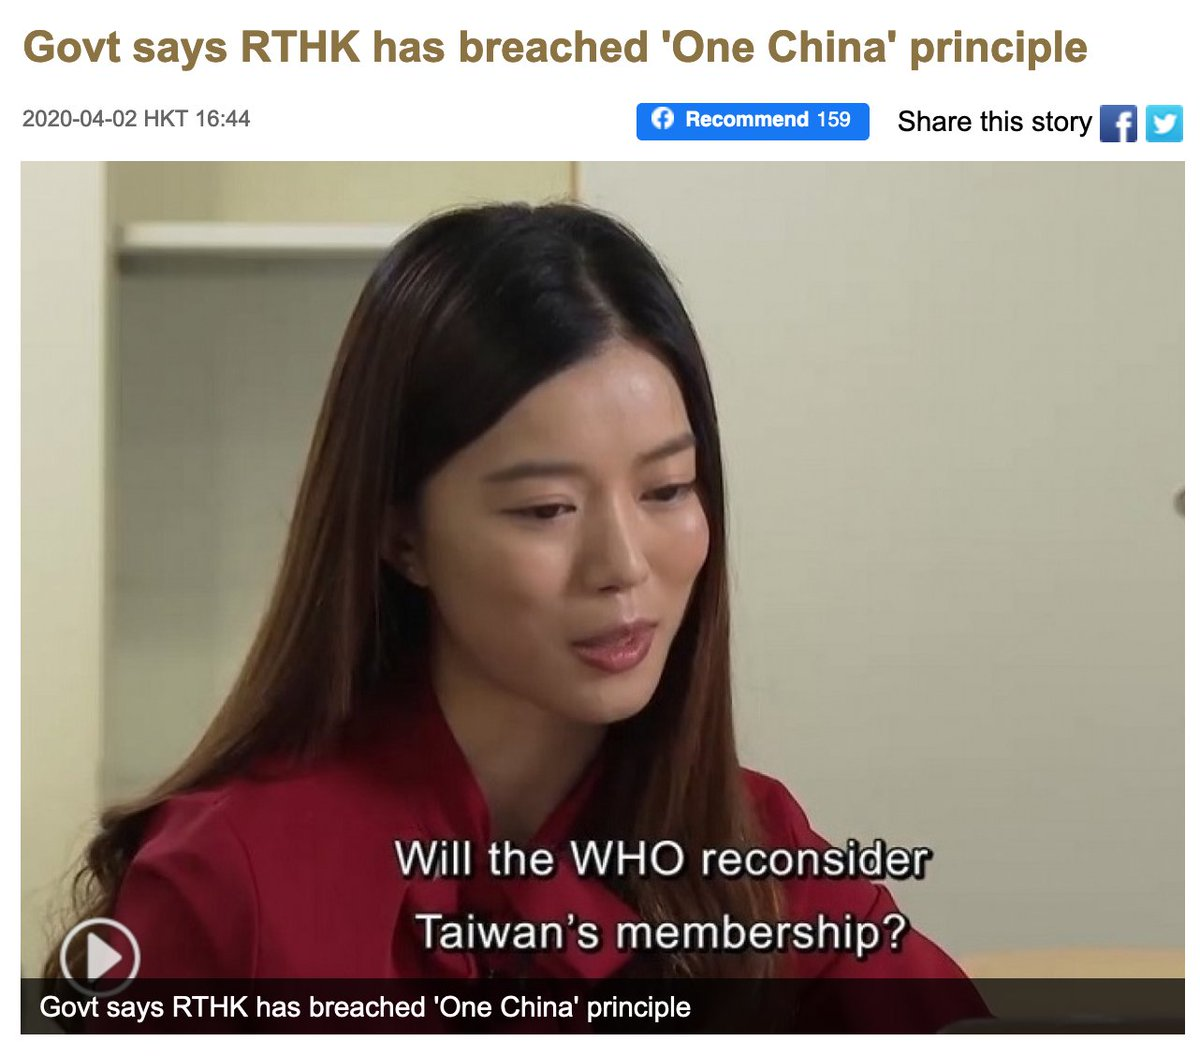 """After #RTHK reporter asked #WHO abt #Taiwan's membership, #HKgov now slams #RTHK for breaching """"one country"""" principle. More than just the intrusion of #pressfreedom, it shows #China's sinking claws into HK affairs & the inability of our puppet leader to safeguard city's autonomy https://twitter.com/nathanlawkc/status/1243889673207832577…"""